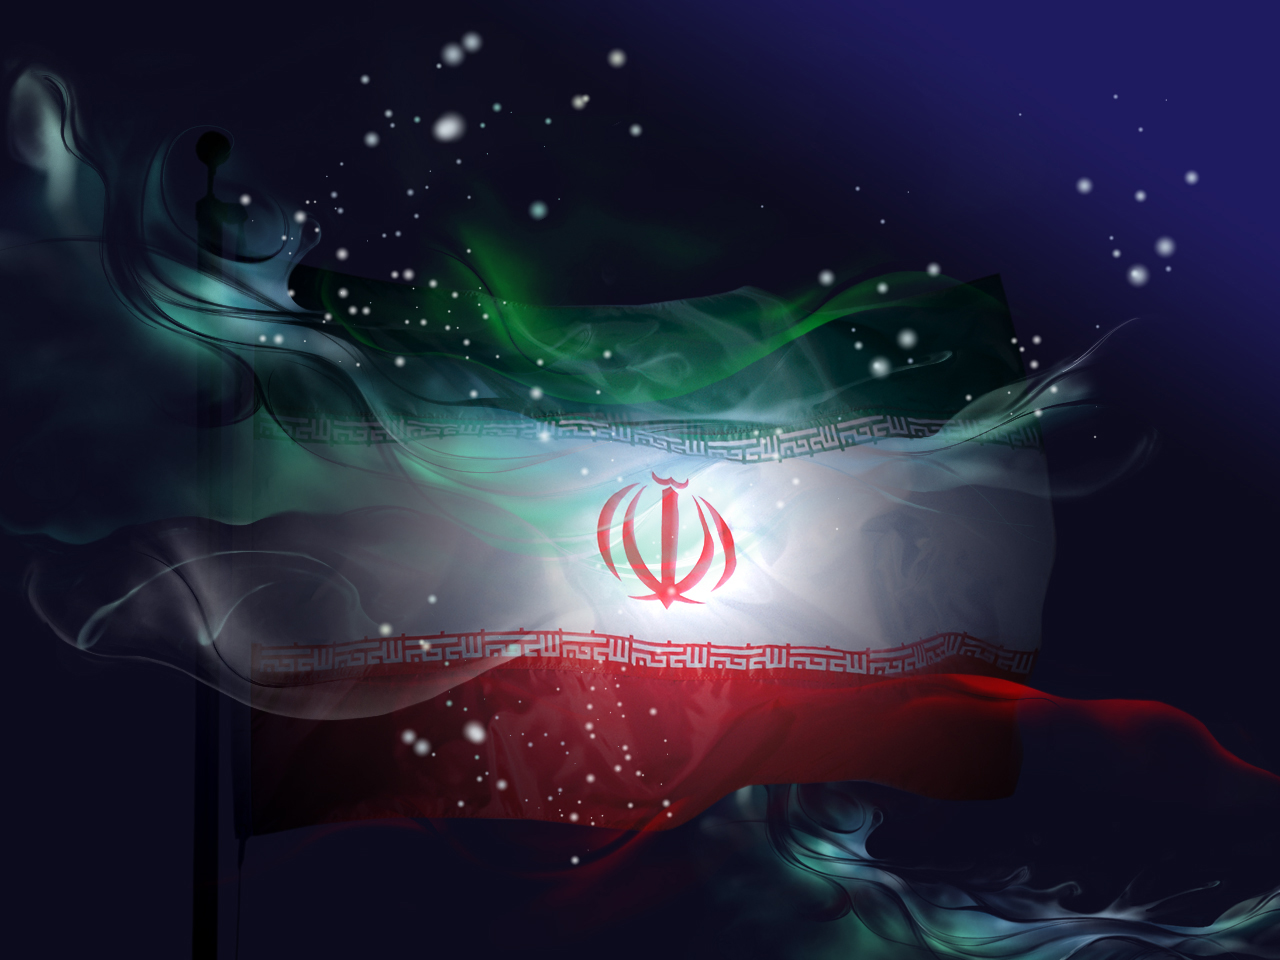 http://3.bp.blogspot.com/-9jtpJhlZqvo/TdSQpELzduI/AAAAAAAABD0/PcCedr7CHjA/s1600/Wallpapers+Flag+of+Iran+Persian+Flag+Graphics+%25282%2529.jpg